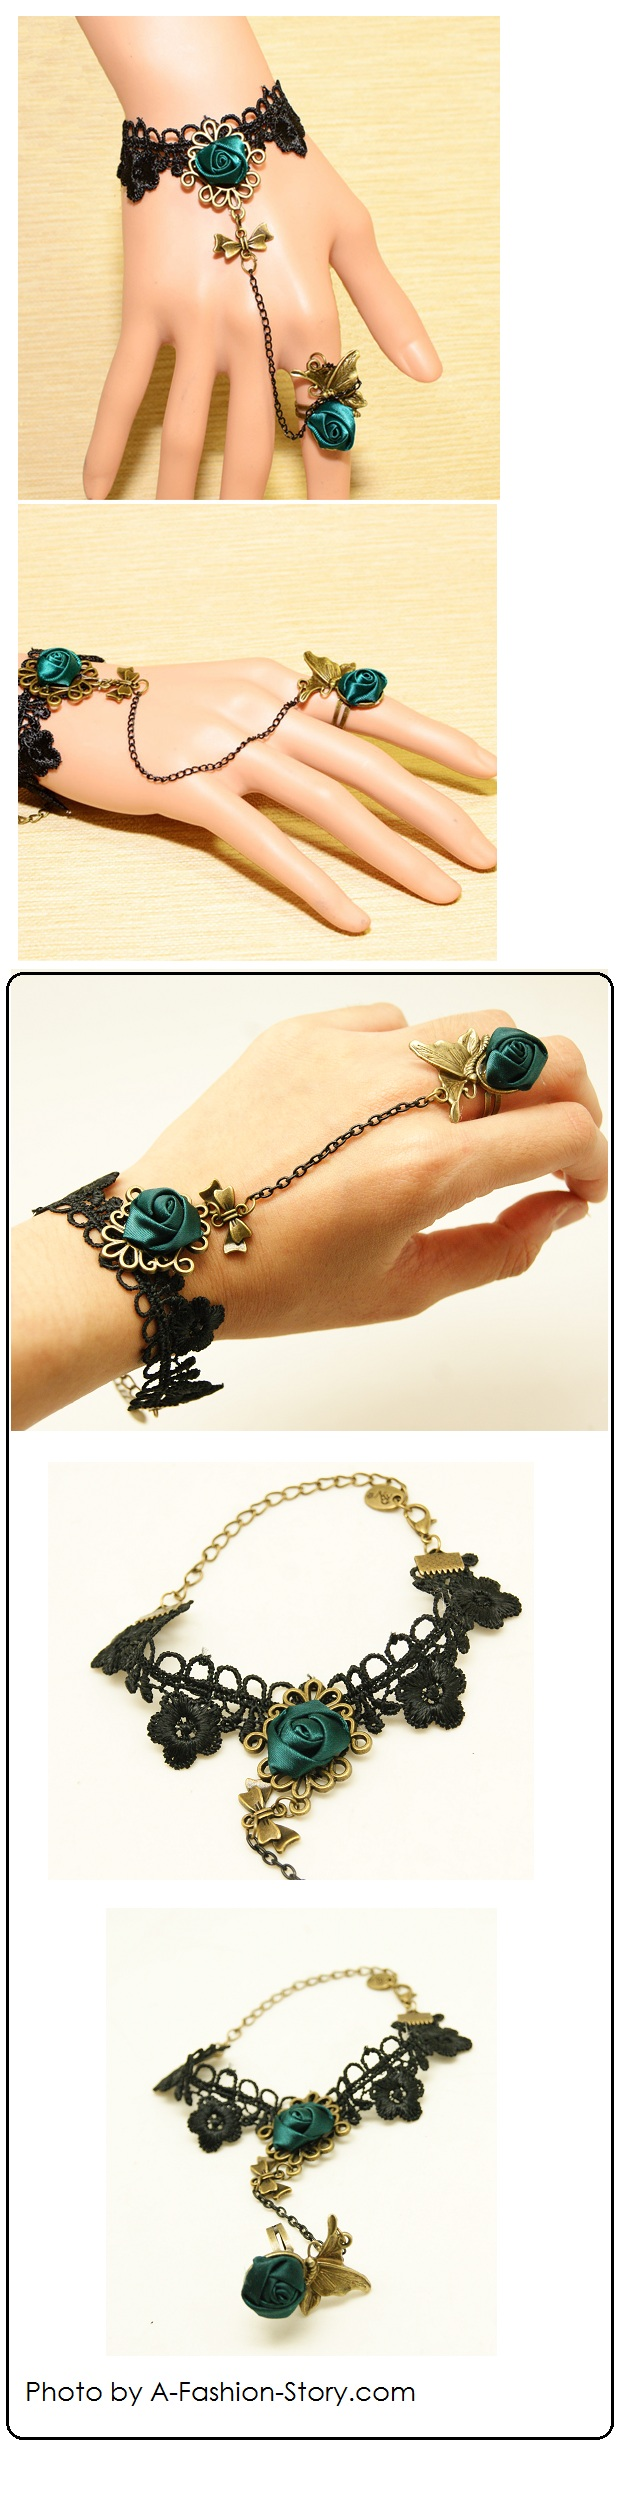 P99542 Rose Butterfly bracelet ring korean accessories aa